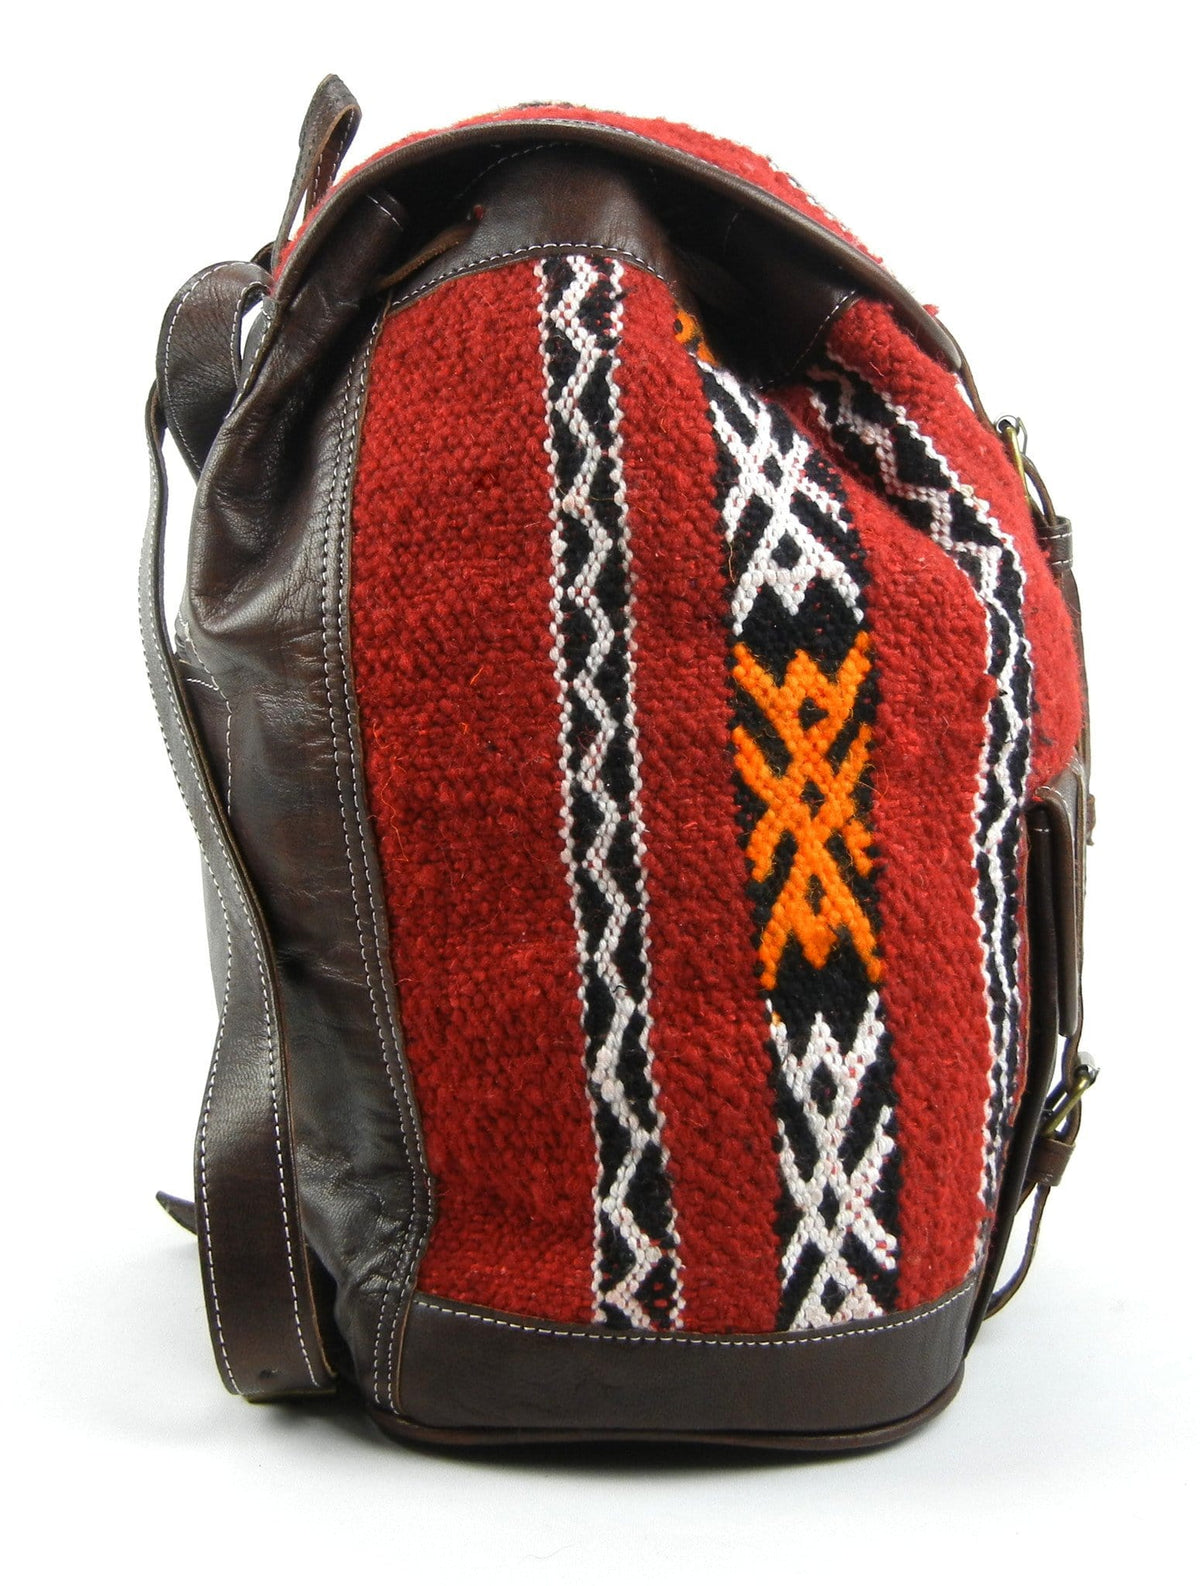 Wool Kilim and Dark Brown Leather Backpack - OneLove Global Imports